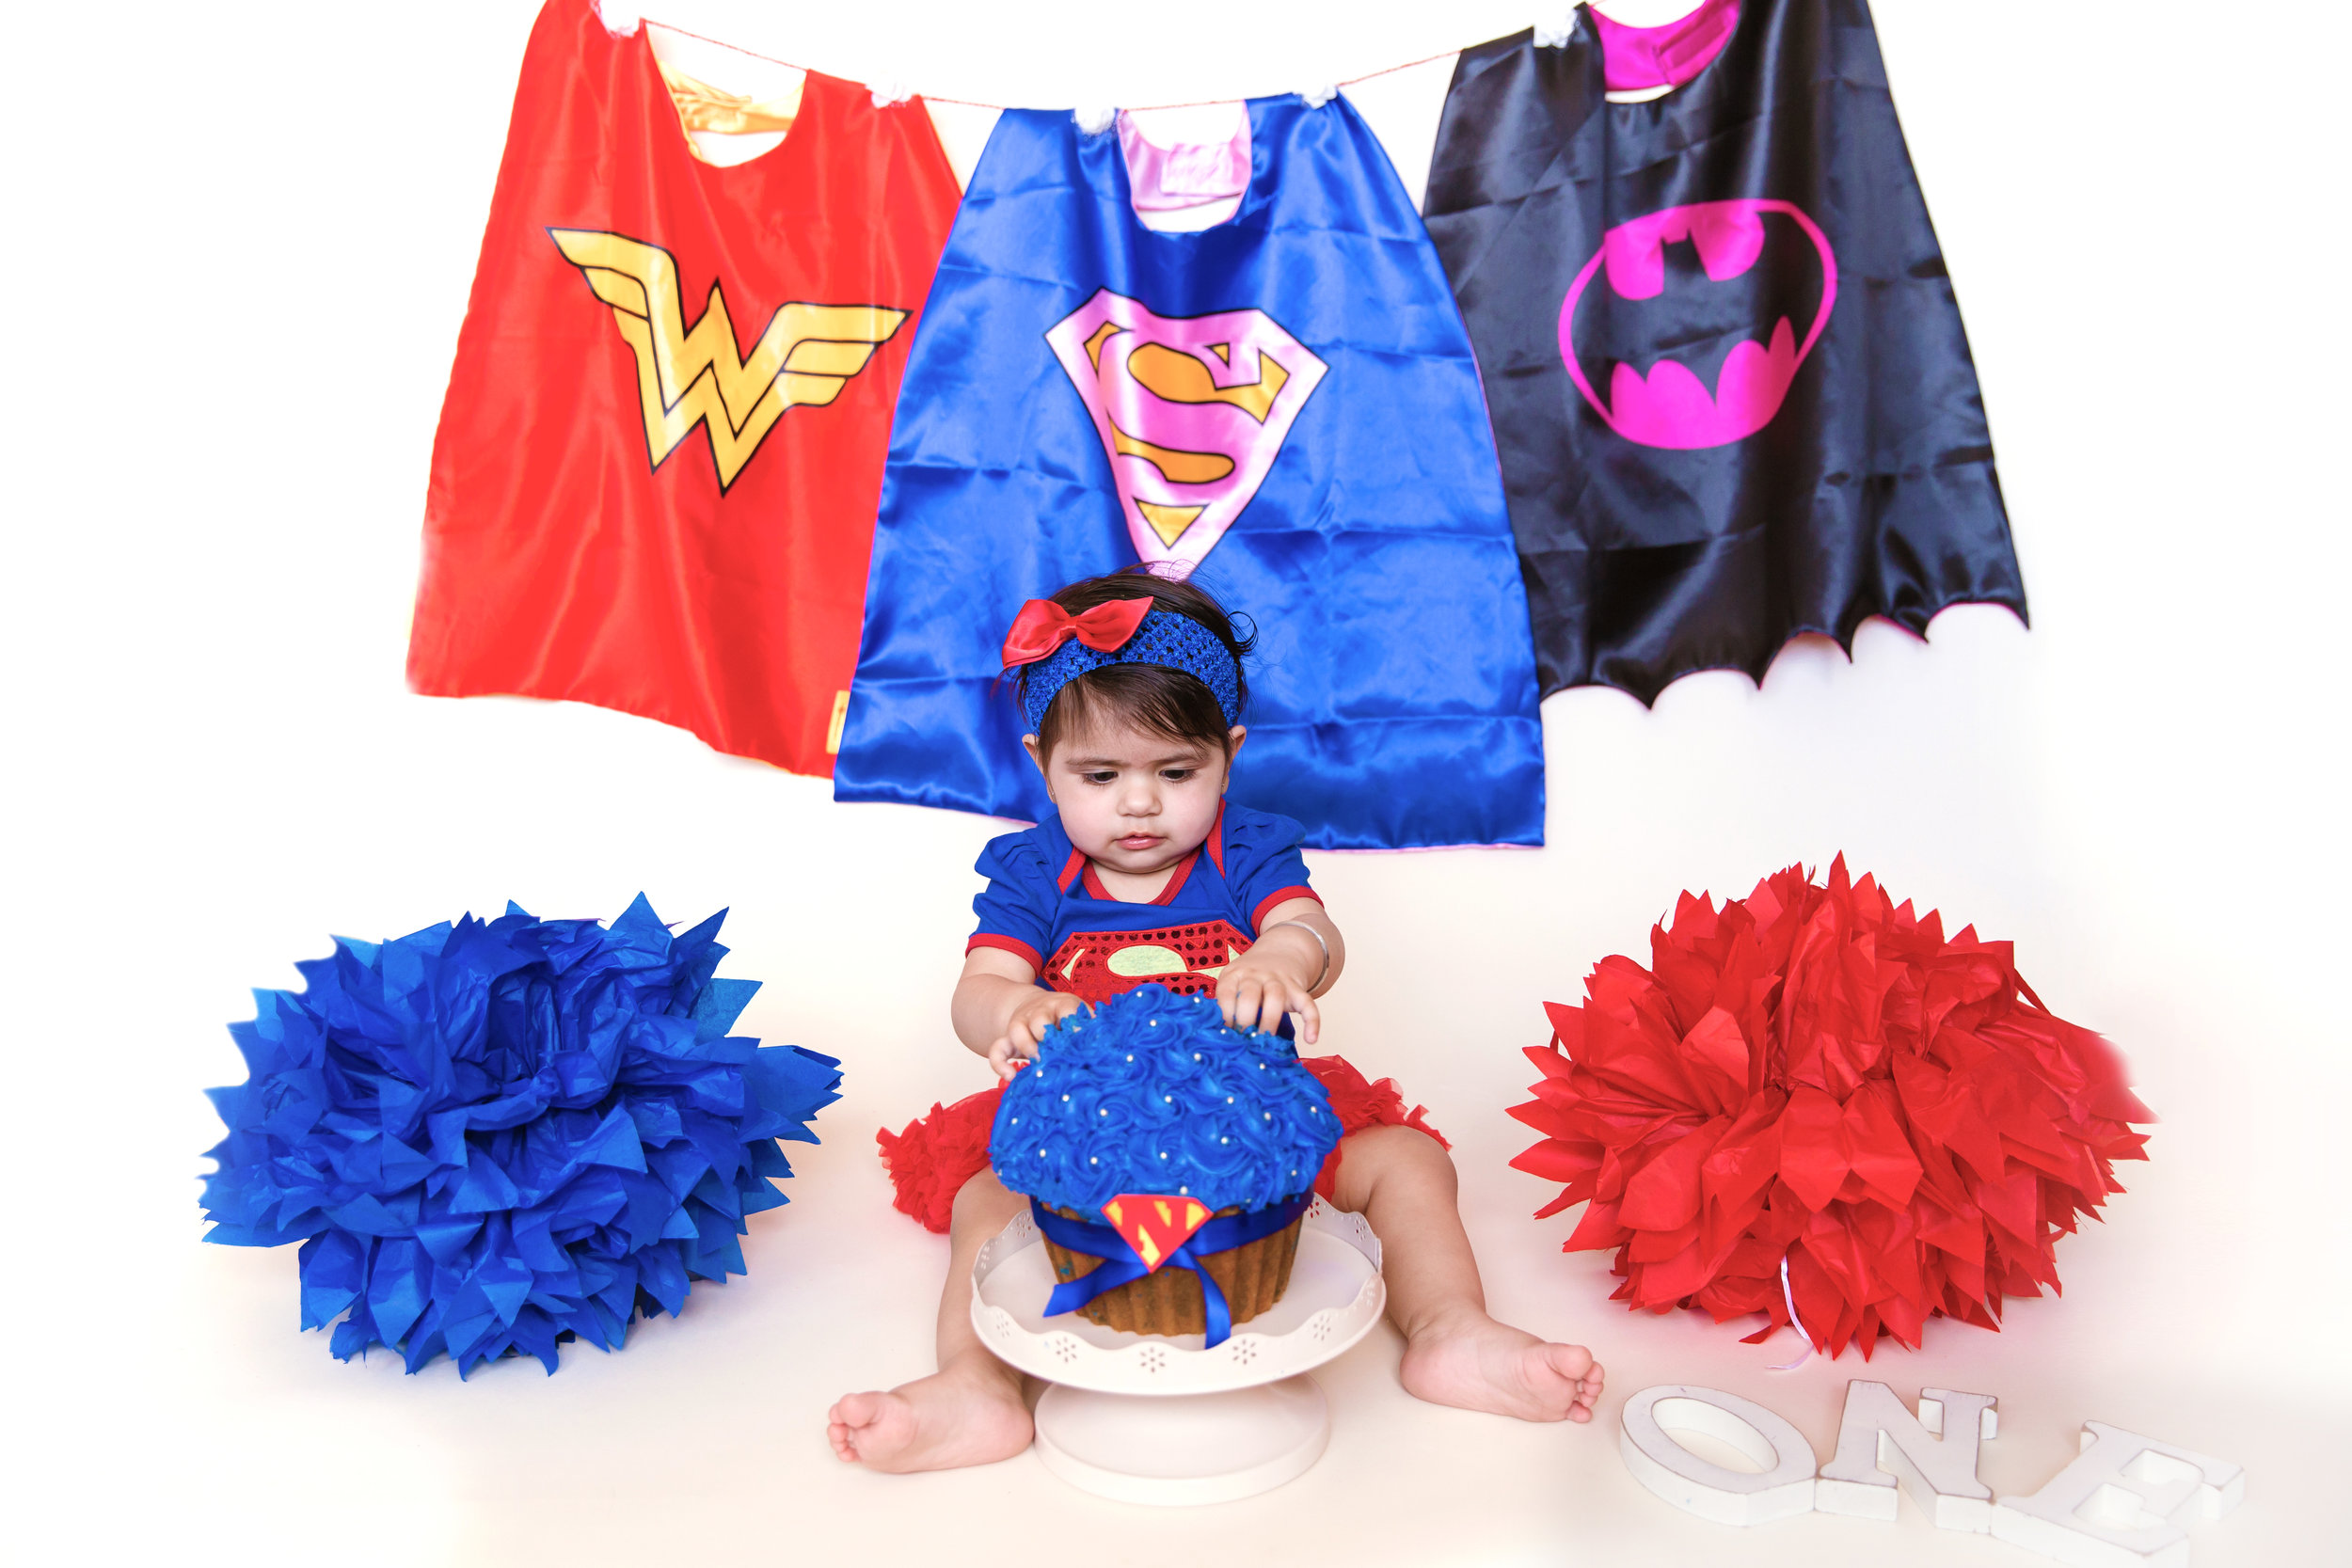 Superhero cakesmash photoshoot for a girl. Baby girl smashing her superhero cake. Calgary cakesmash photographer. Milashka Photography.